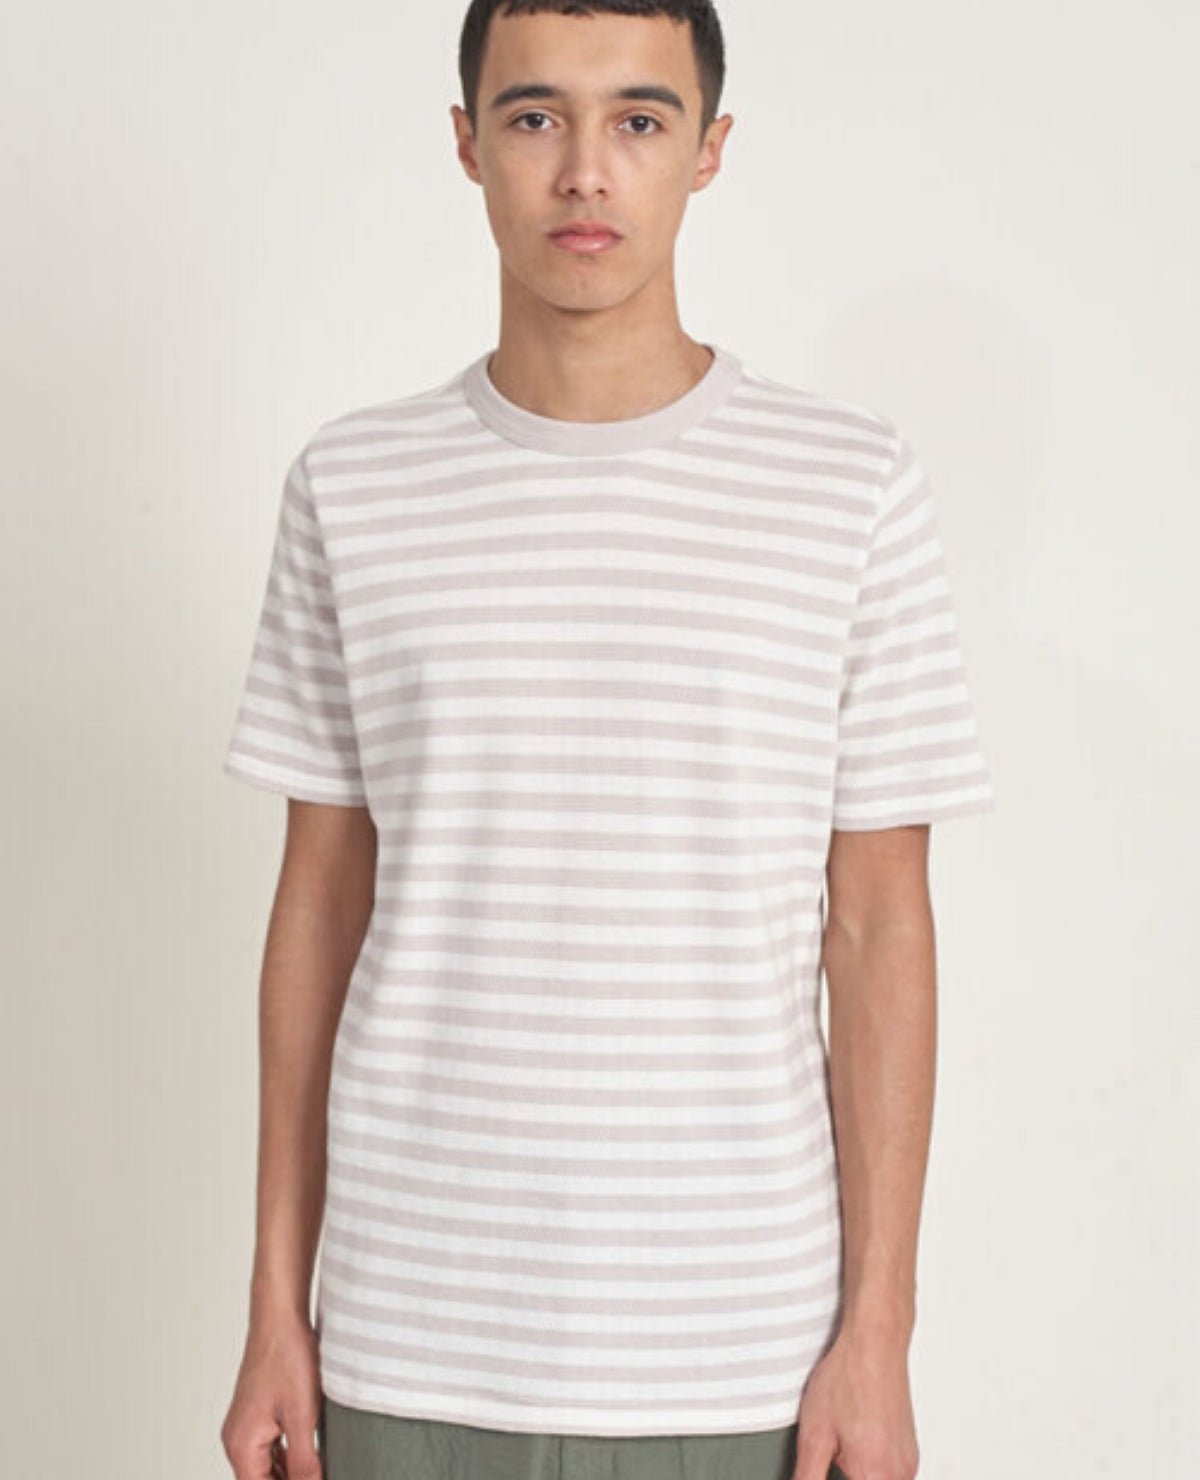 LES BASICS Crew Tee / Grey Stripe